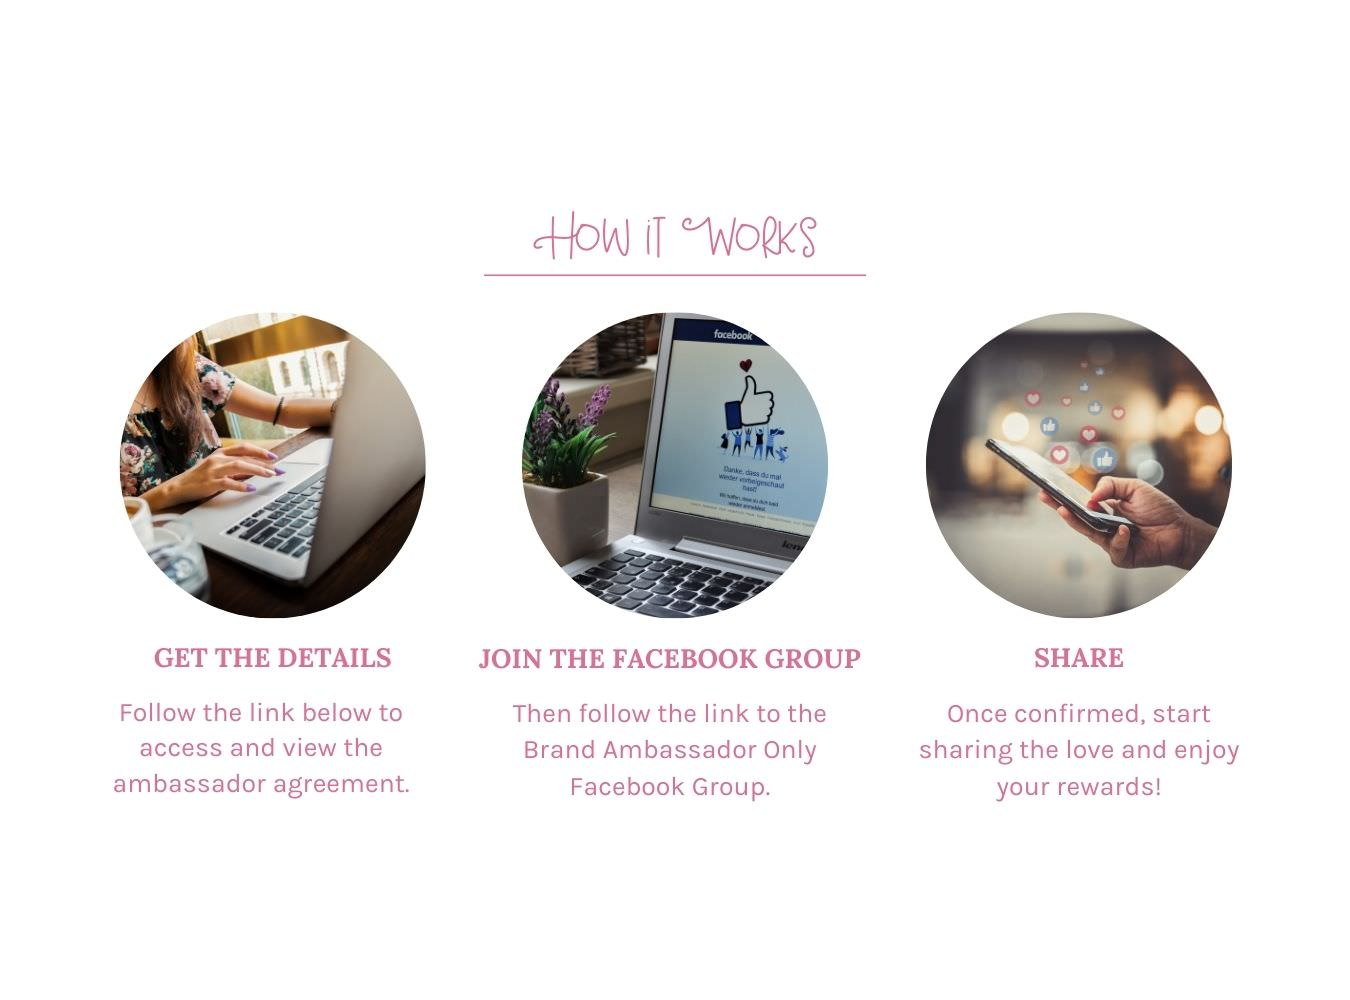 steps to sign up for hair bow brand ambassador